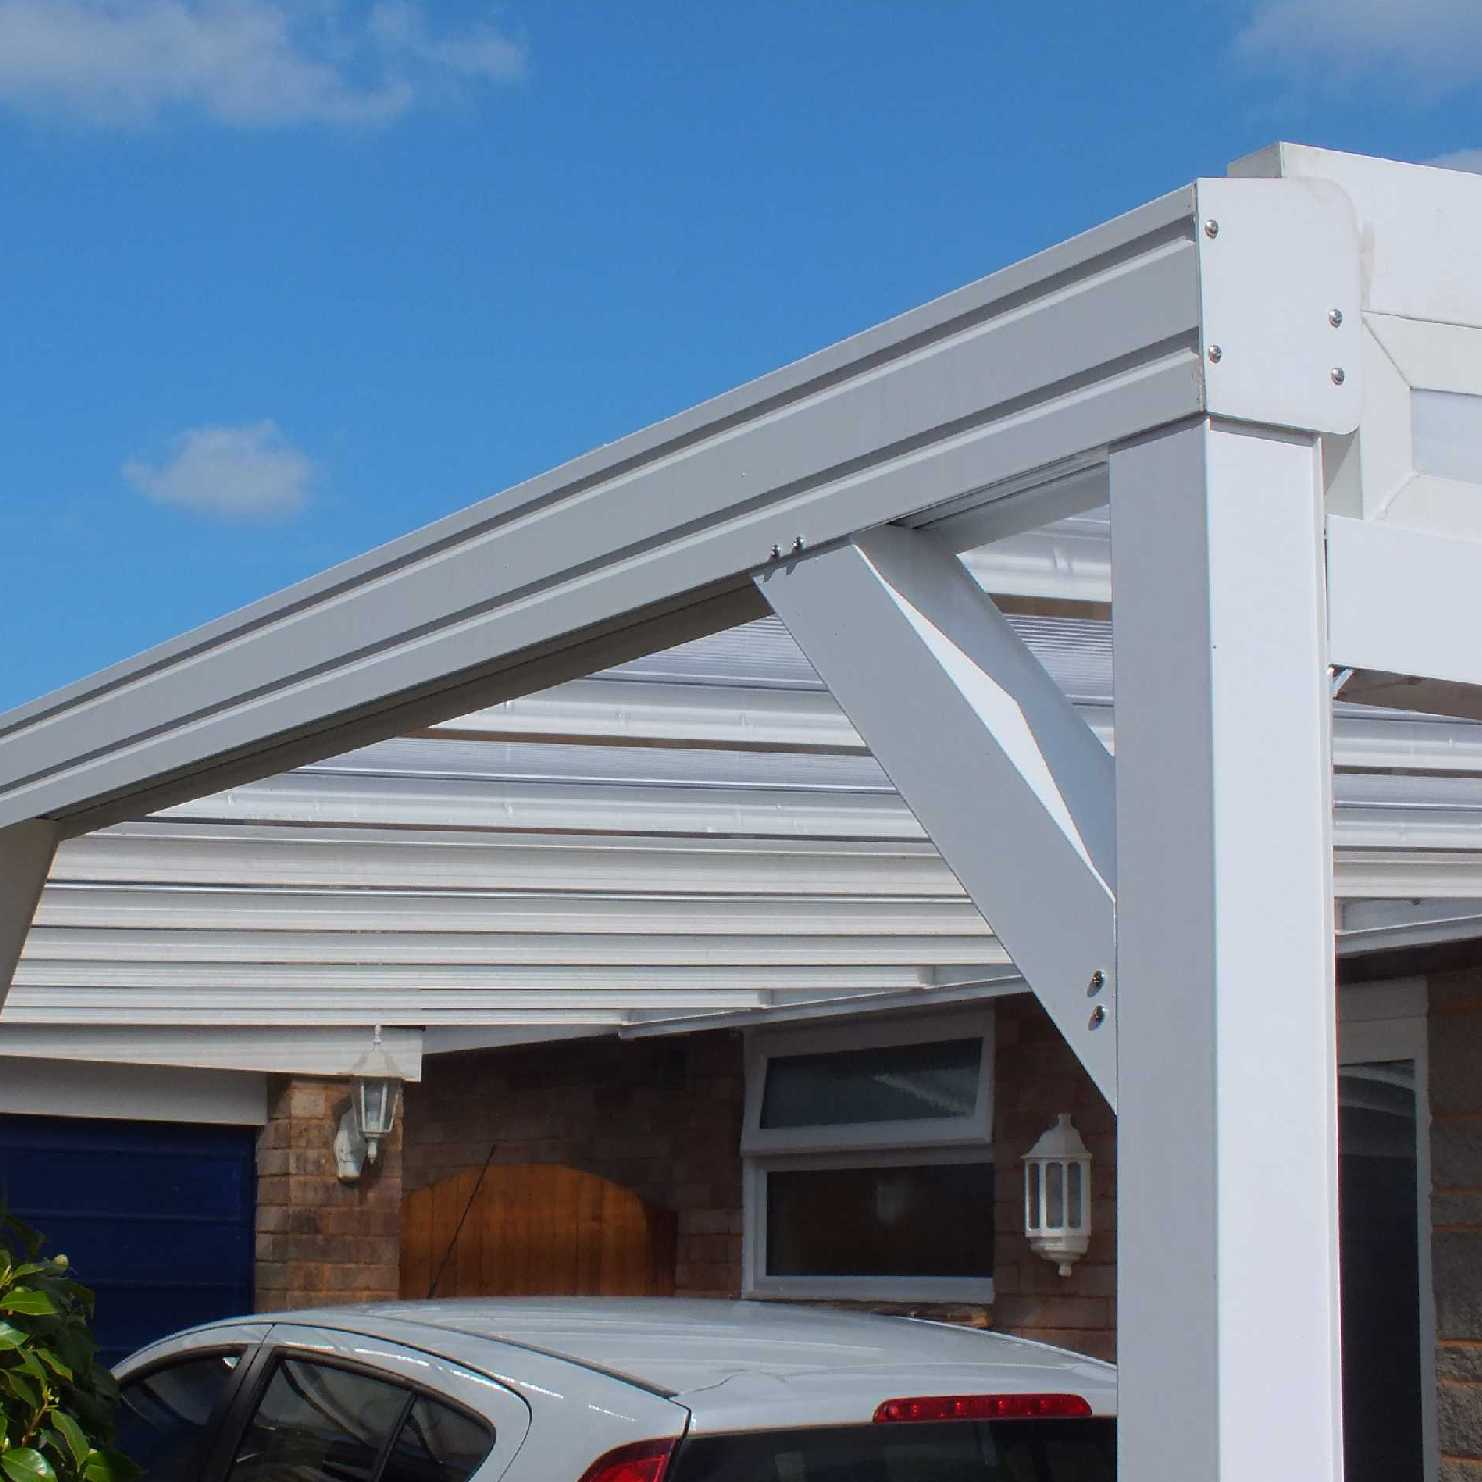 Buy Omega Smart White Lean-To Canopy with 16mm Polycarbonate Glazing - 3.1m (W) x 4.5m (P), (2) Supporting Posts online today